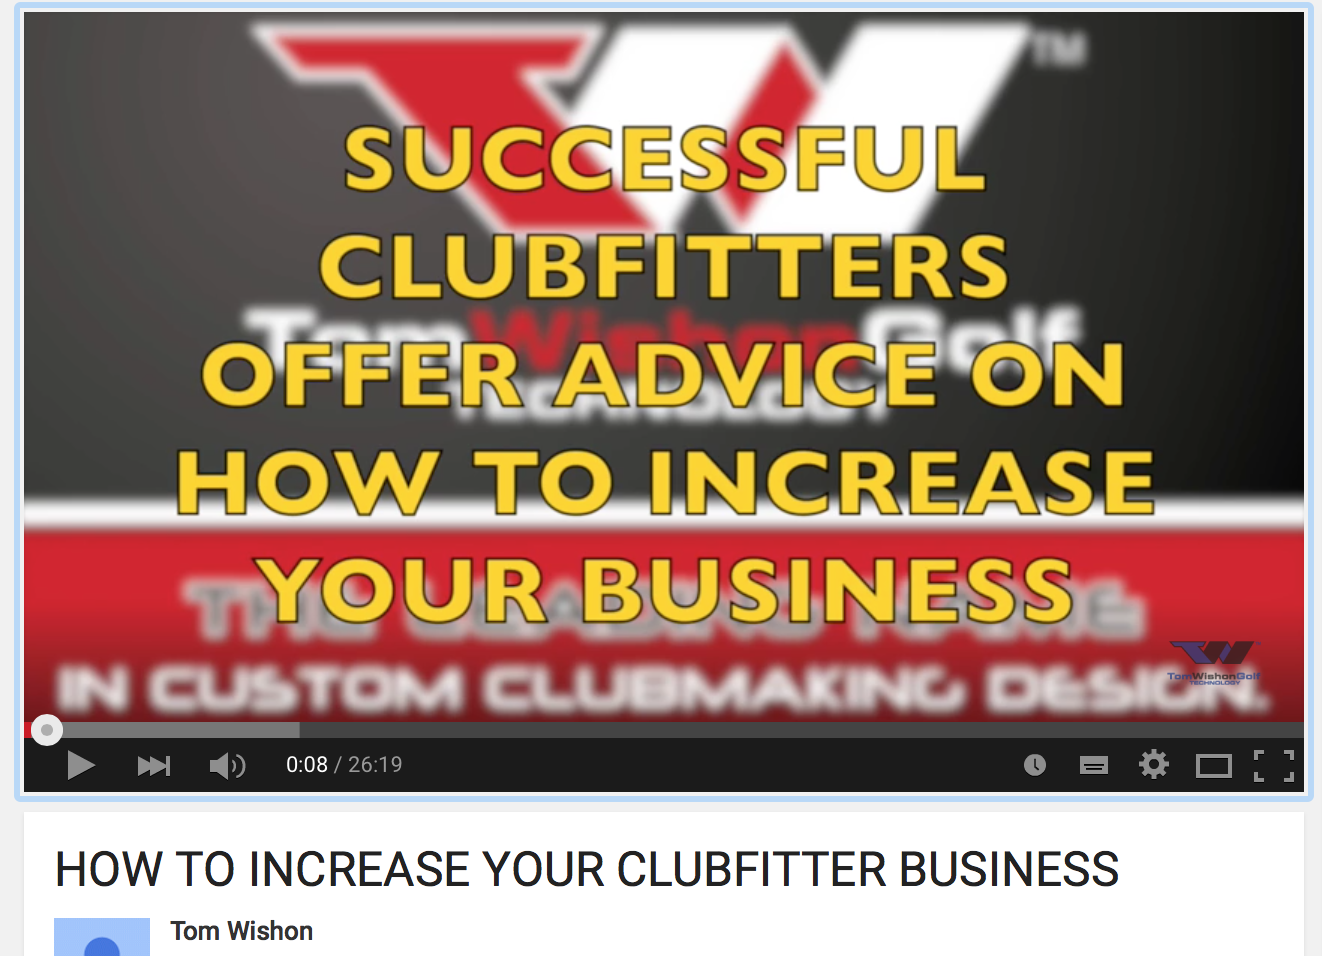 HOW TO INCREASE YOUR CLUBFITTER BUSINESS